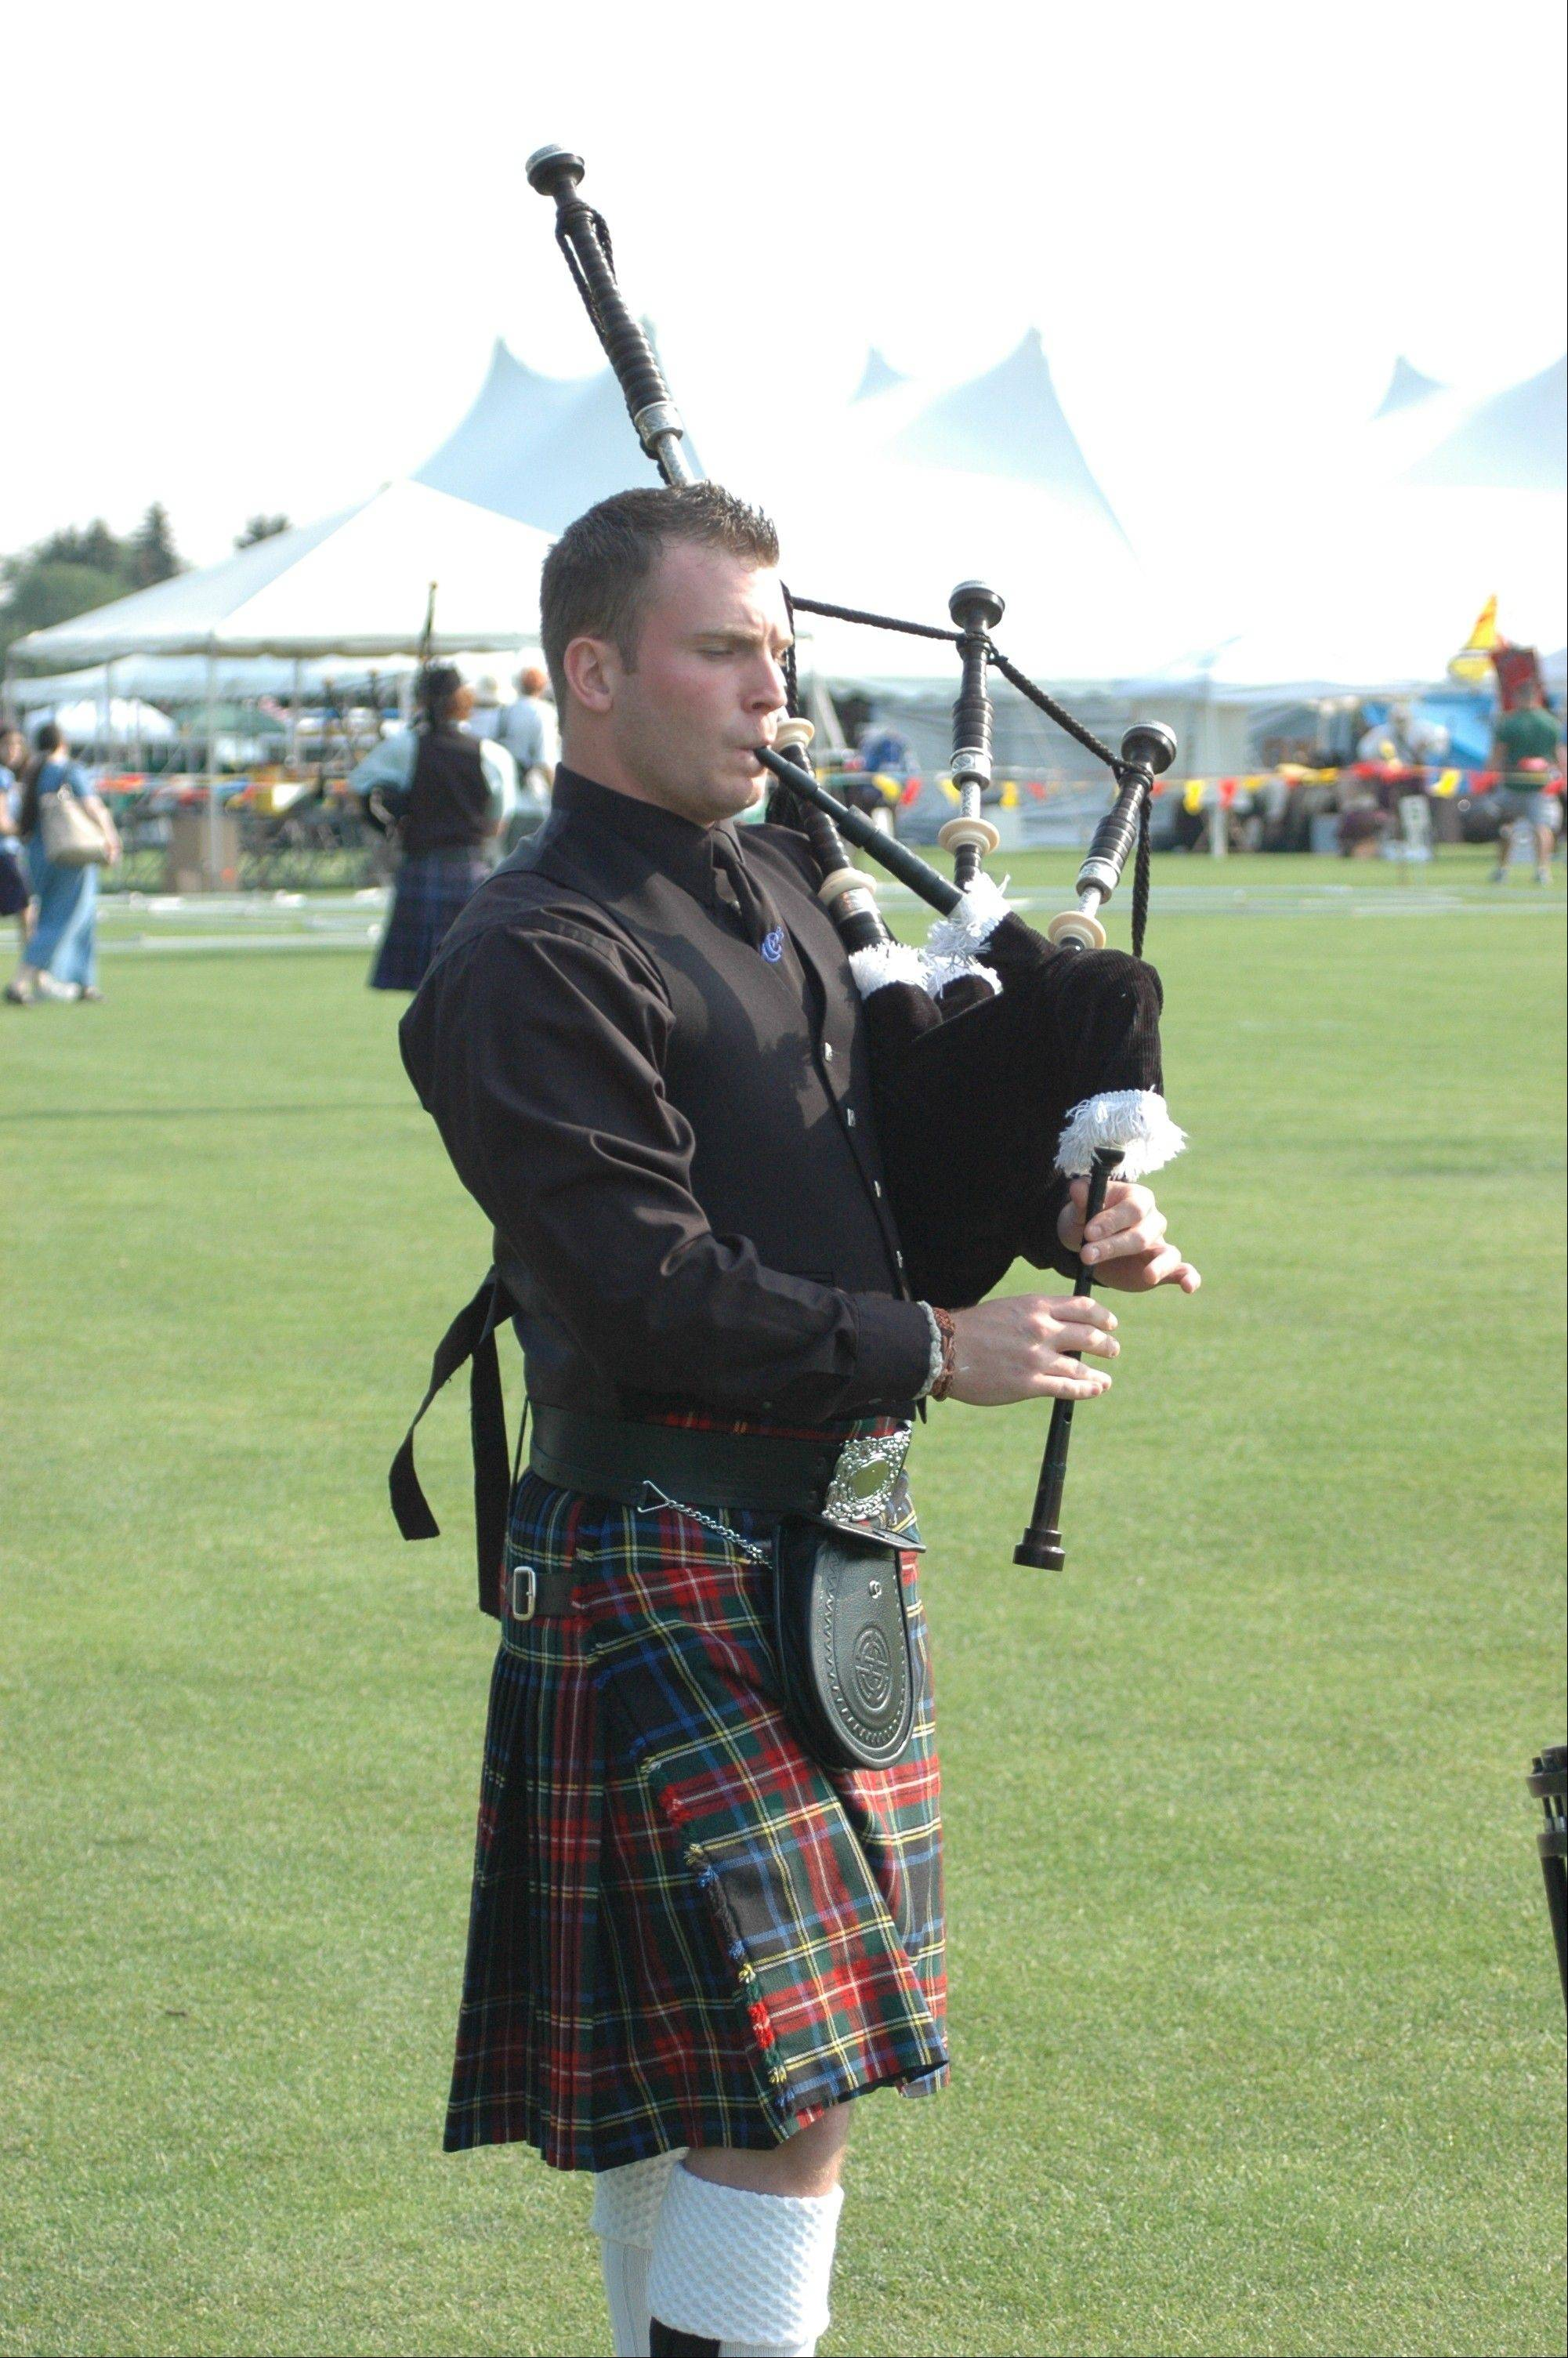 The Scottish Festival and Highland Games at Hamilton Lakes in Itasca features music competitions for bagpipers.